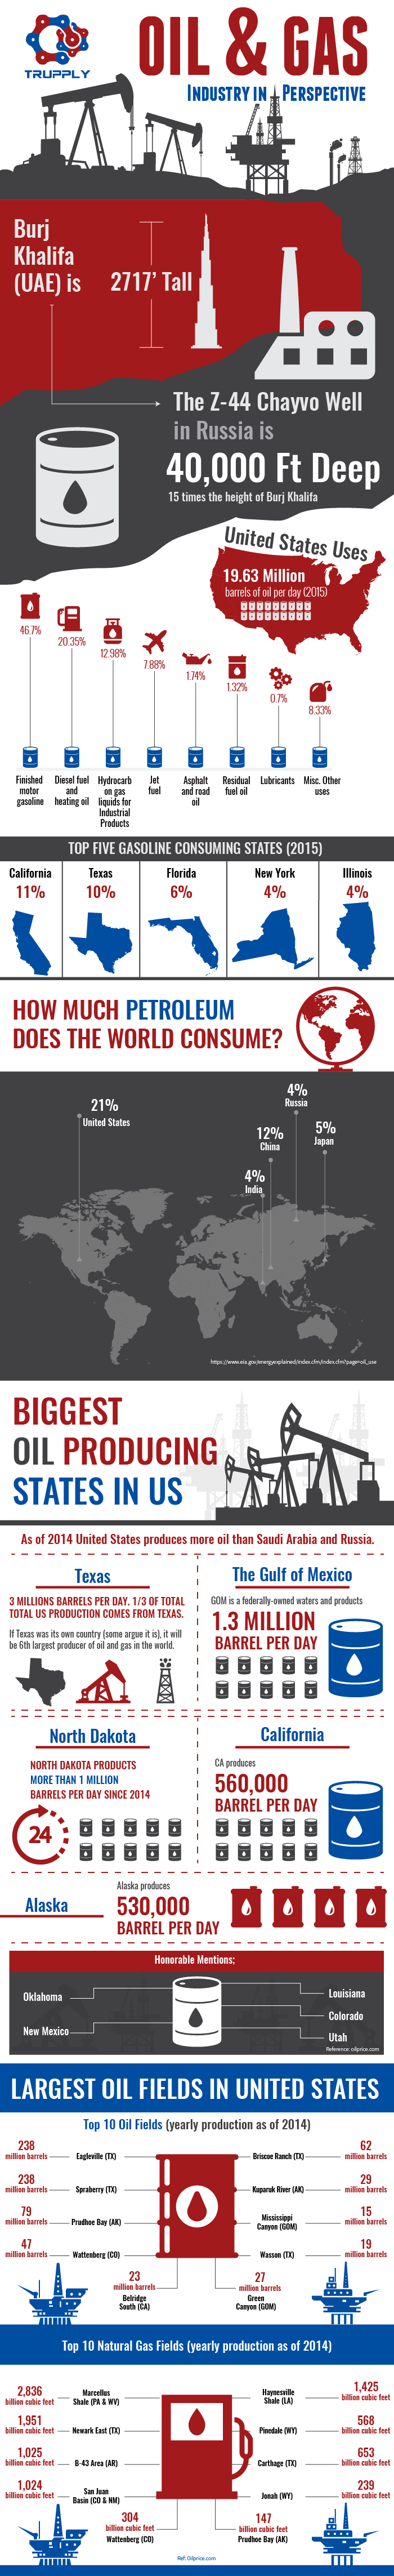 Interesting Facts on O&G Industry